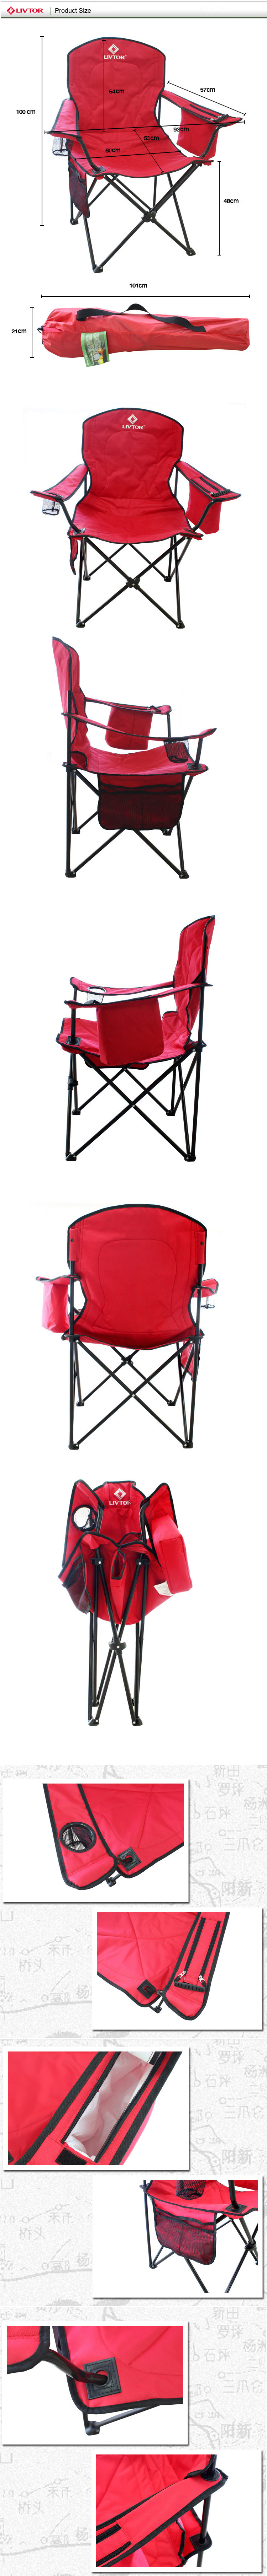 Livtor Foldable Large Size Beach Chair with Heat Preservation Bag